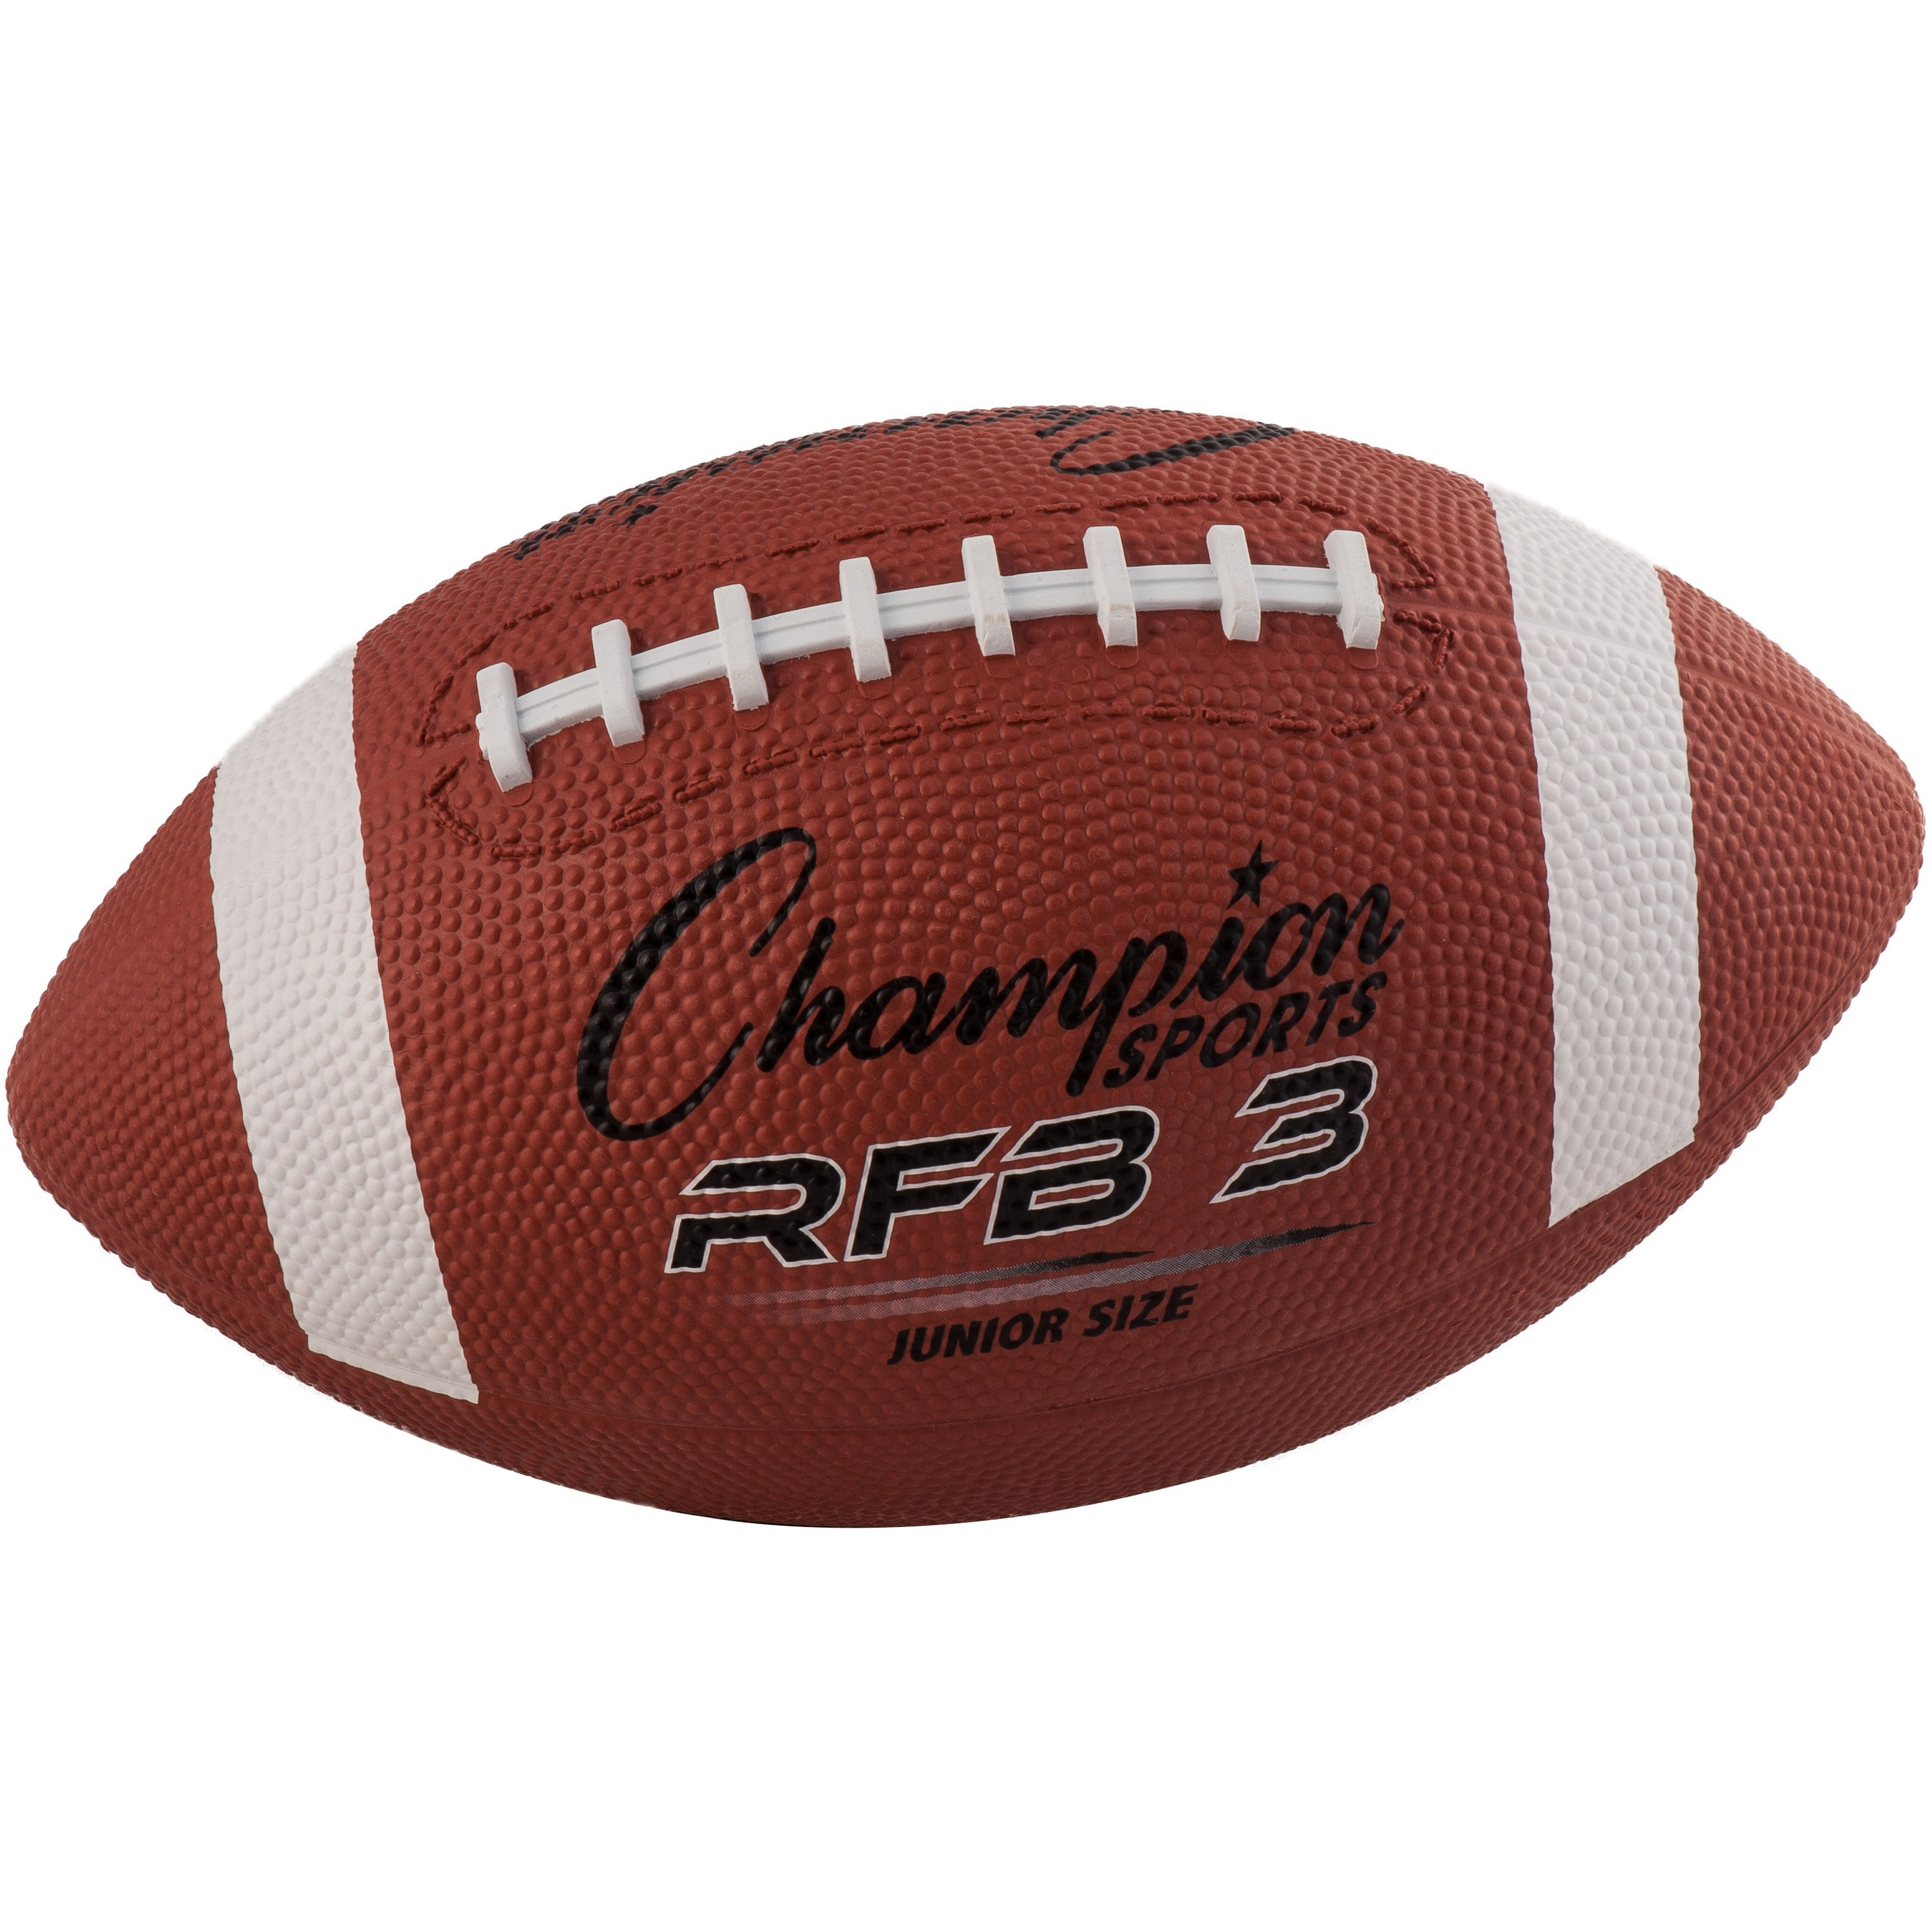 Champion Sport, CSIRFB3, s Junior-size Football, 1 Each, Brown